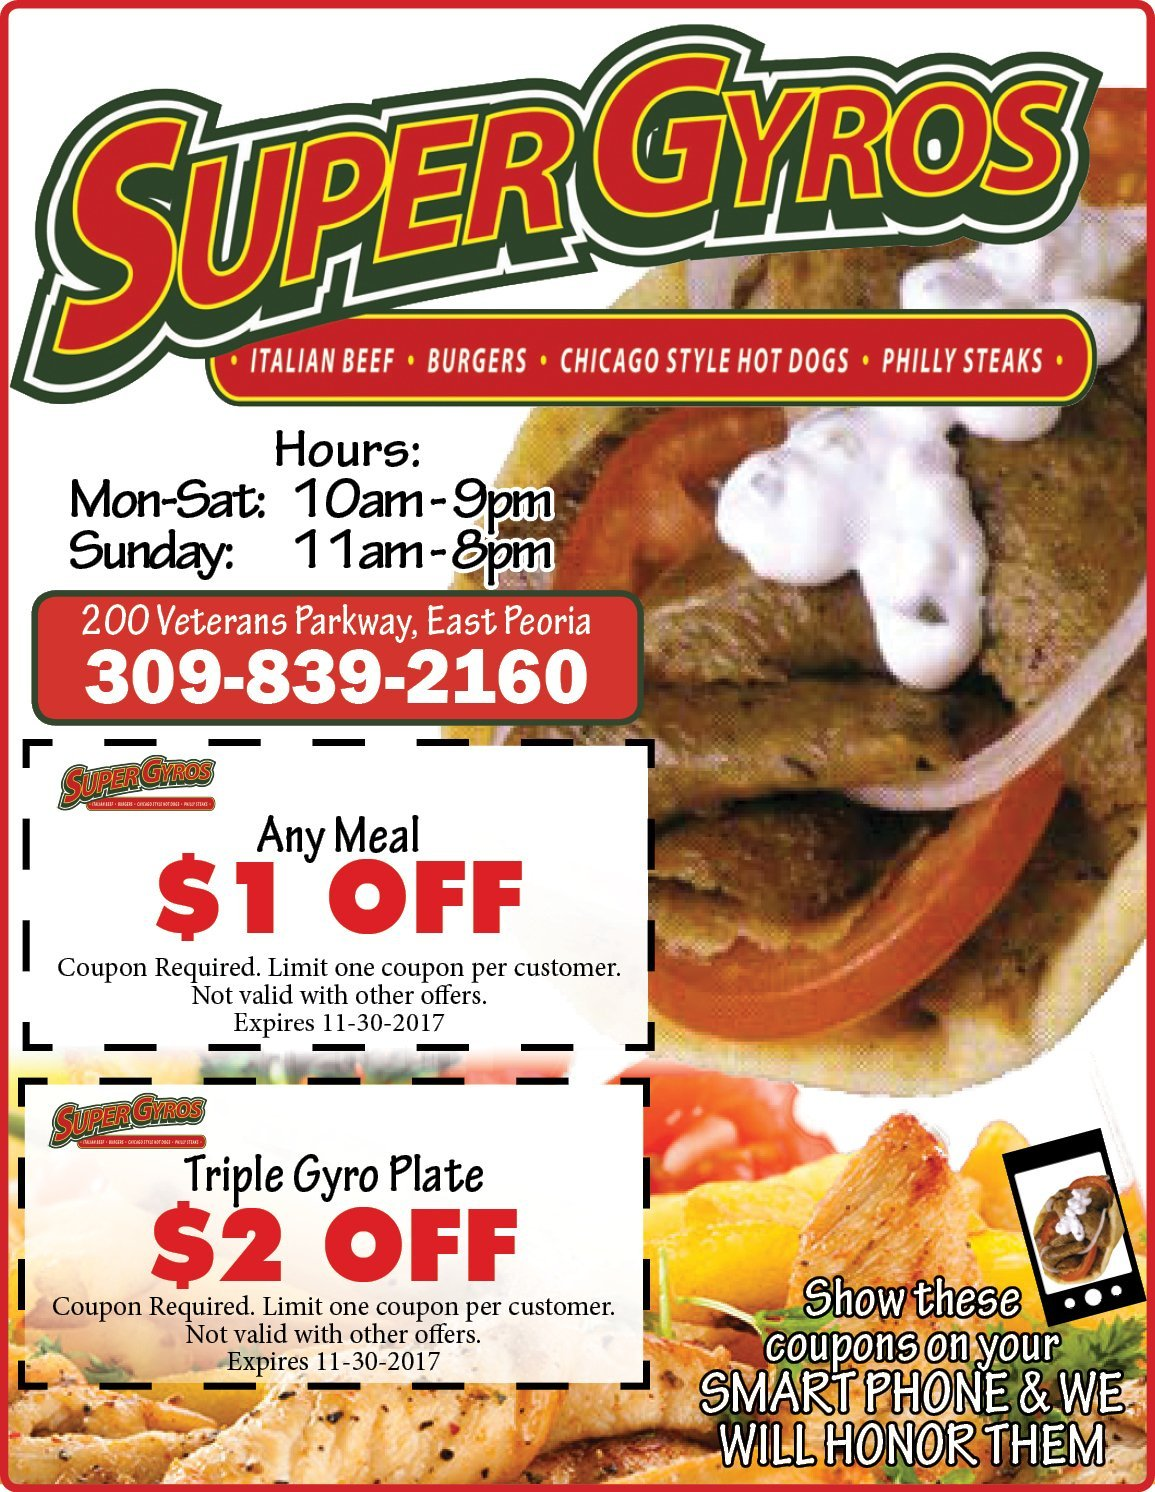 Super Gyros $ off any meal and triple gyro plate coupons East Peoria, IL